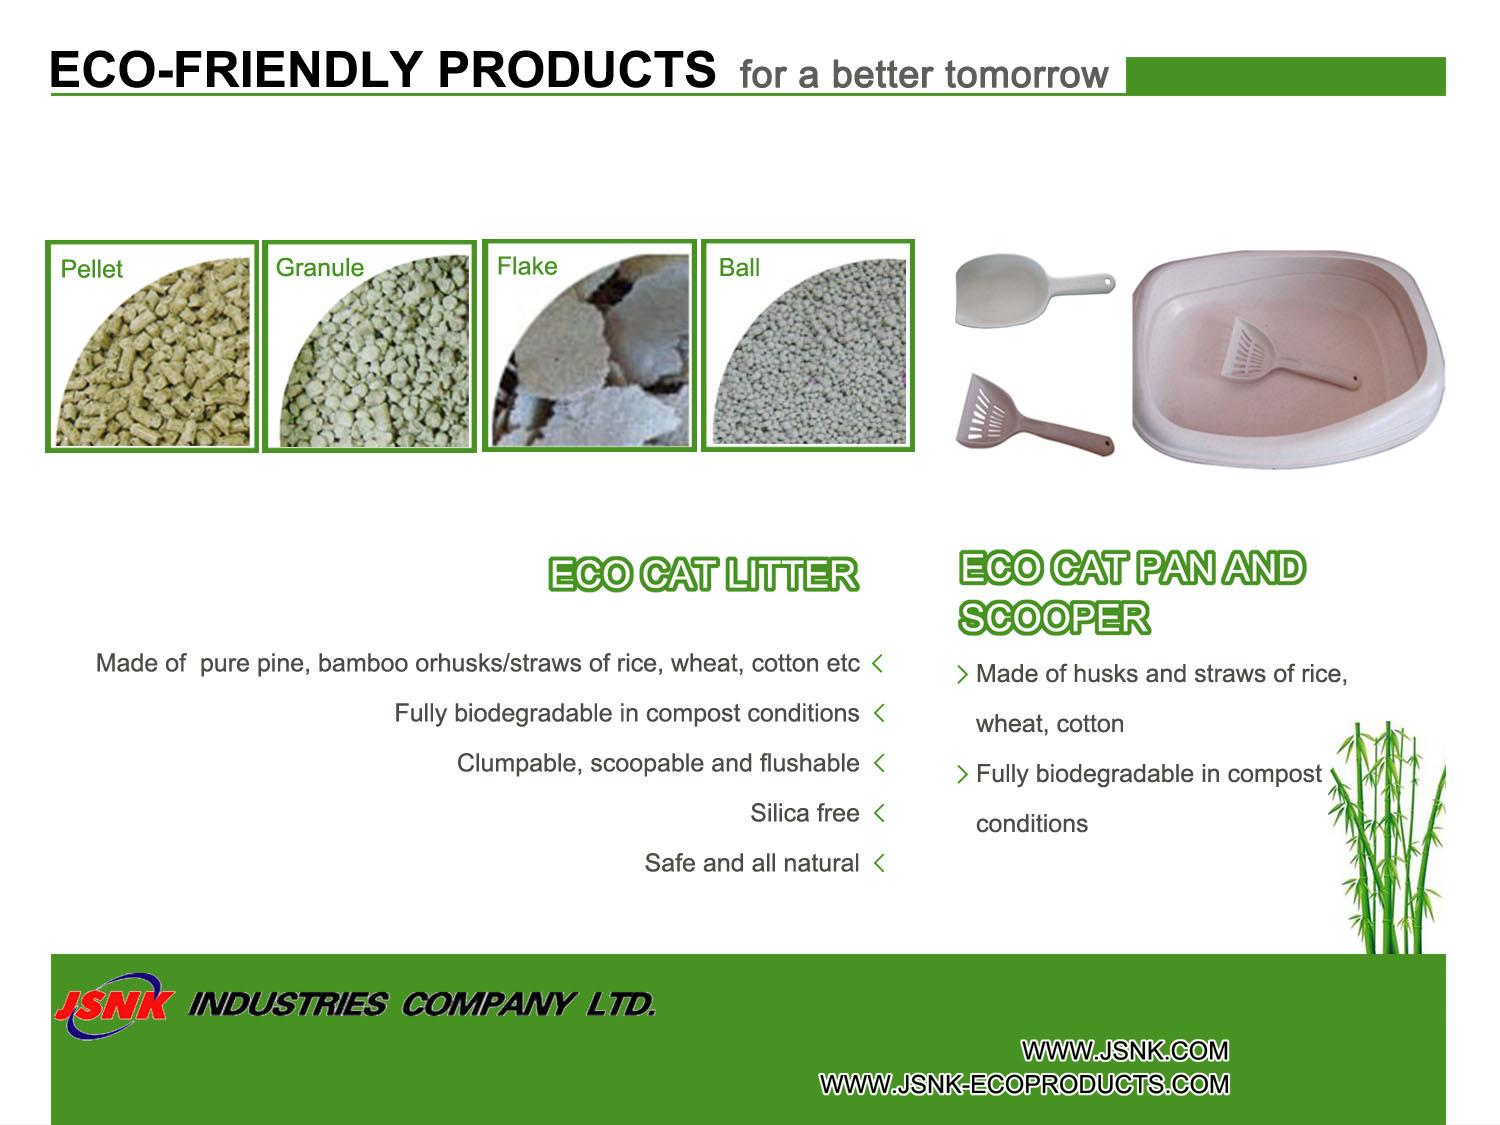 Eco Cat Litter, Eco Cat Pan and Scooper